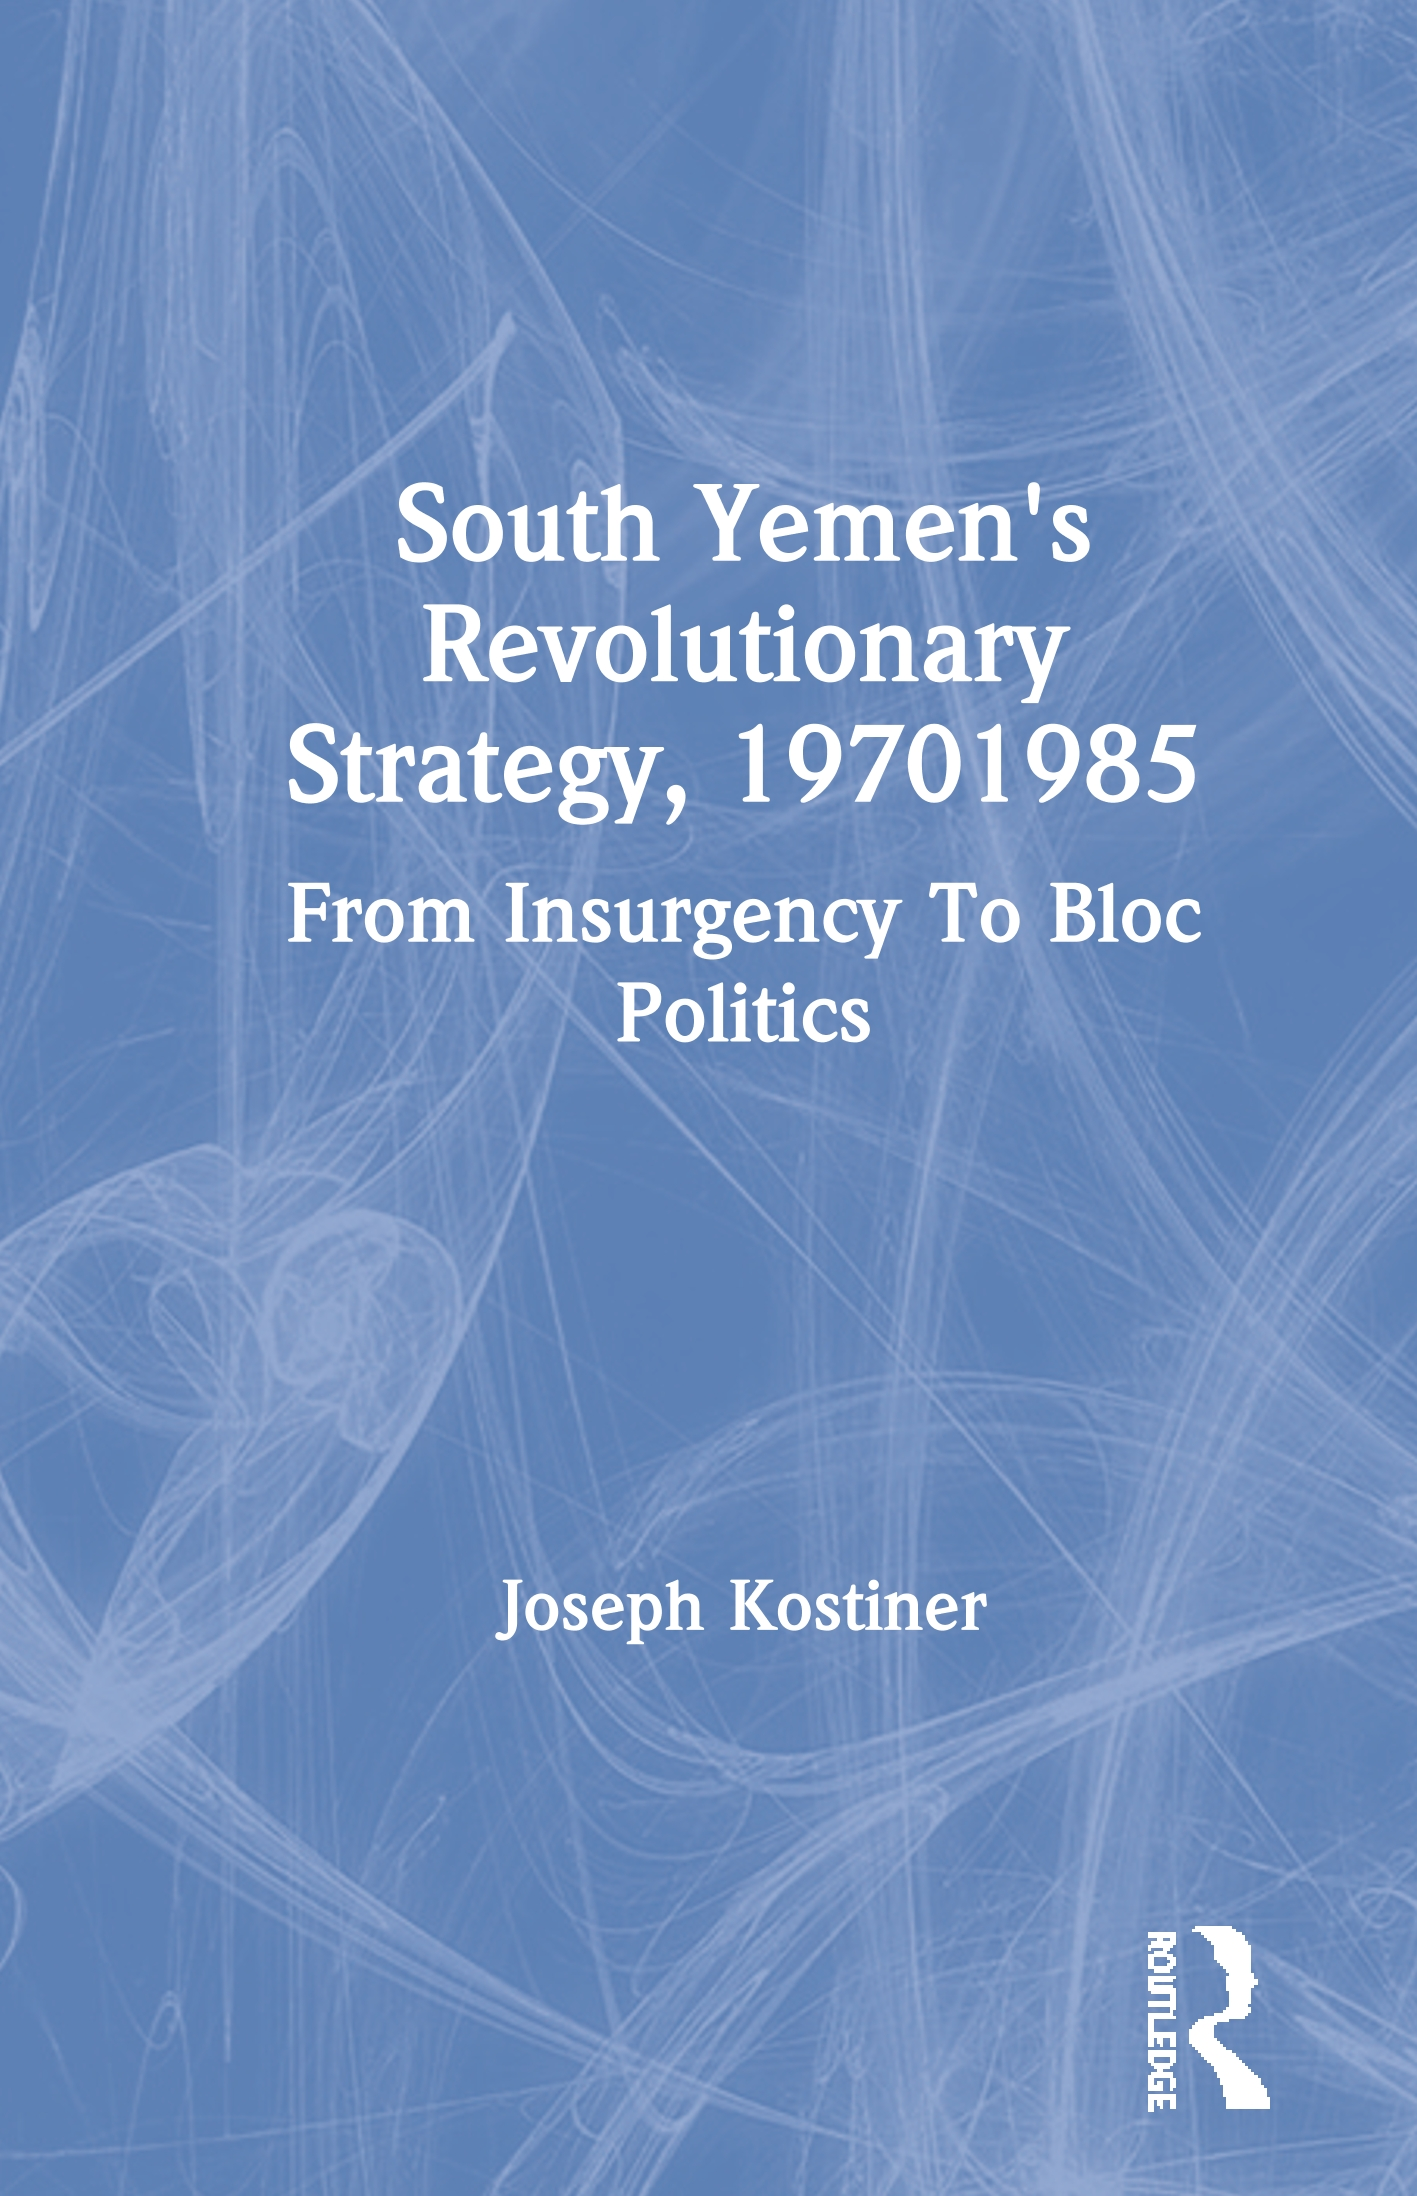 South Yemen's Revolutionary Strategy, 19701985: From Insurgency To Bloc Politics, 1st Edition (Hardback) book cover